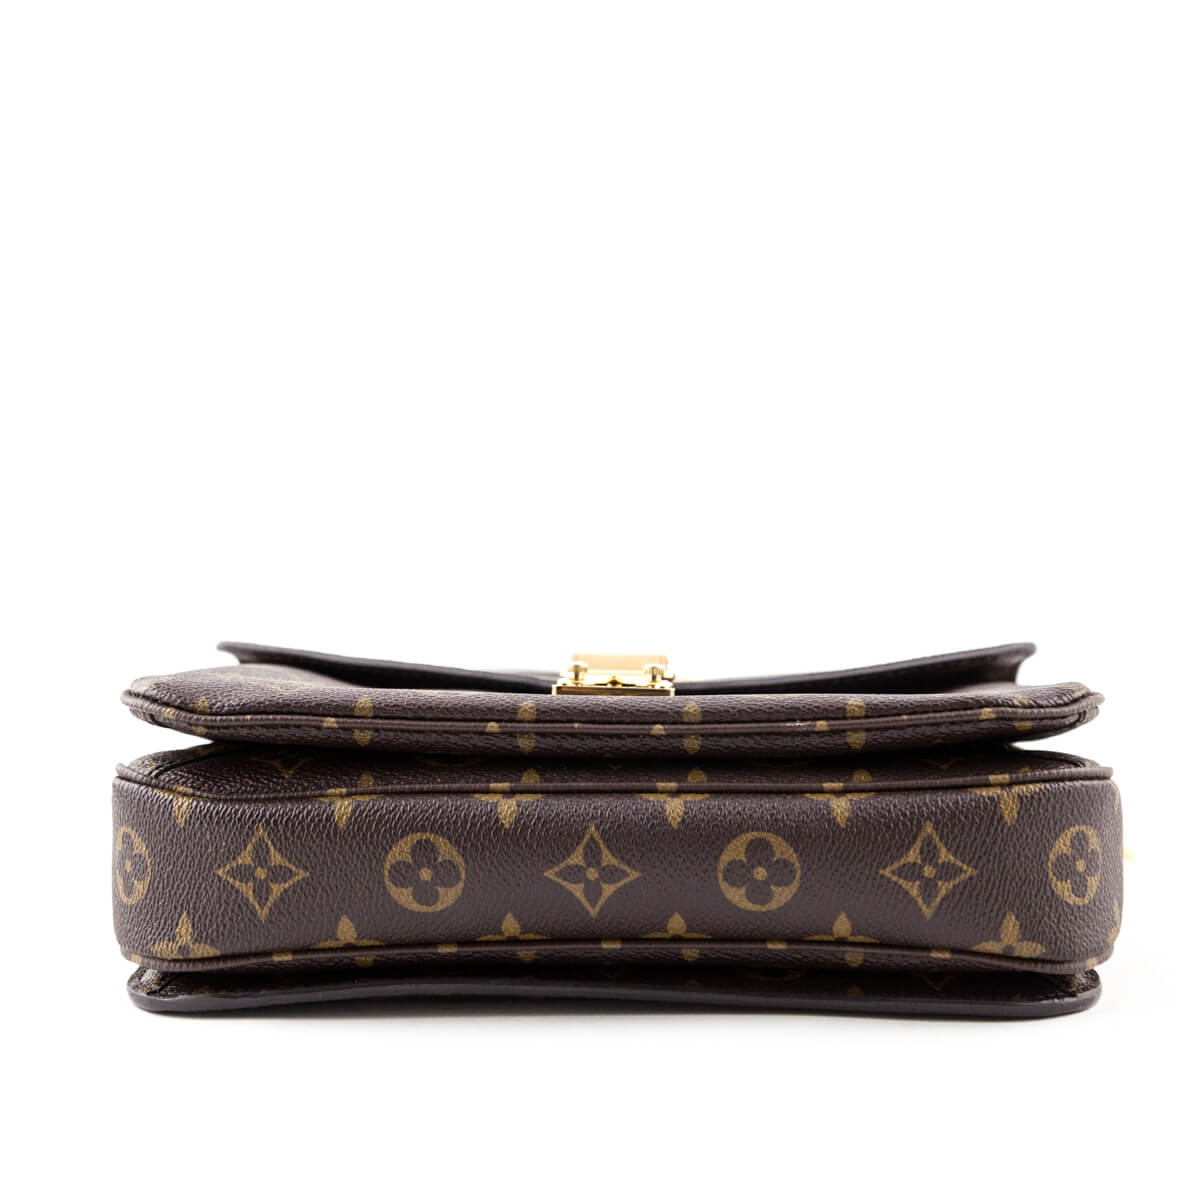 40b3a9fac3c1 ... Louis Vuitton Monogram Pochette Metis - LOVE that BAG - Preowned  Authentic Designer Handbags ...